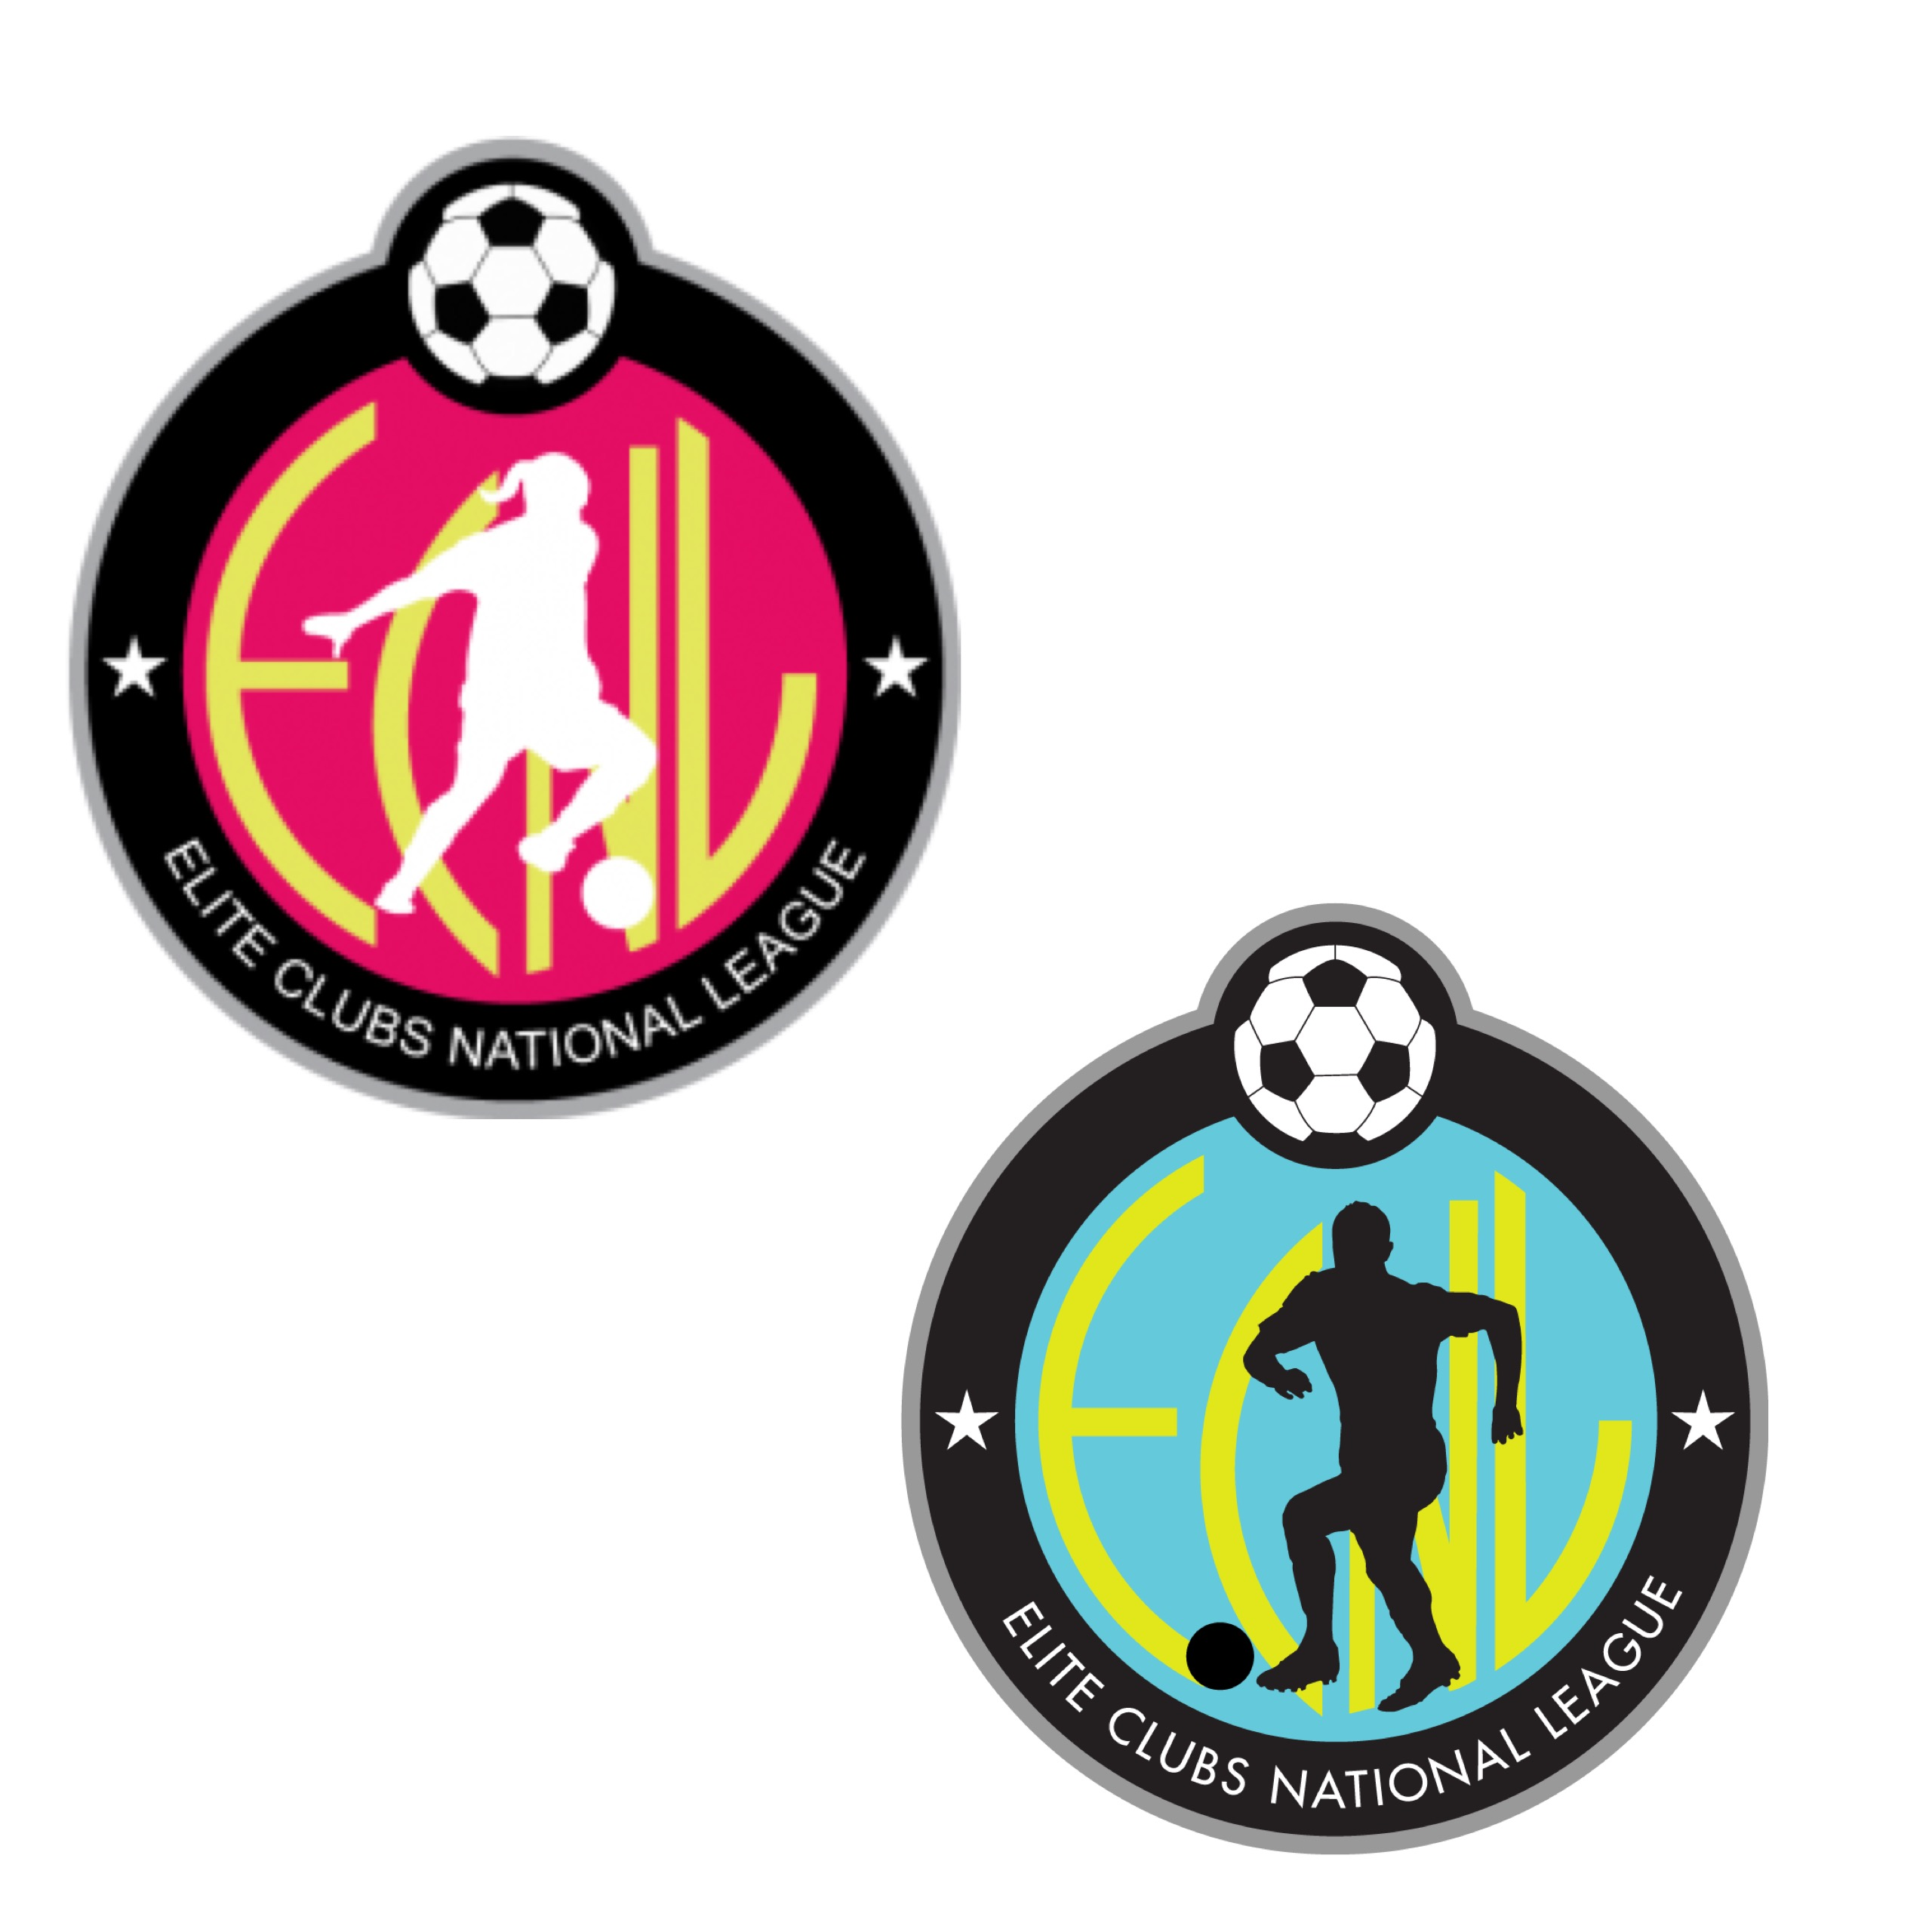 About the ECNL